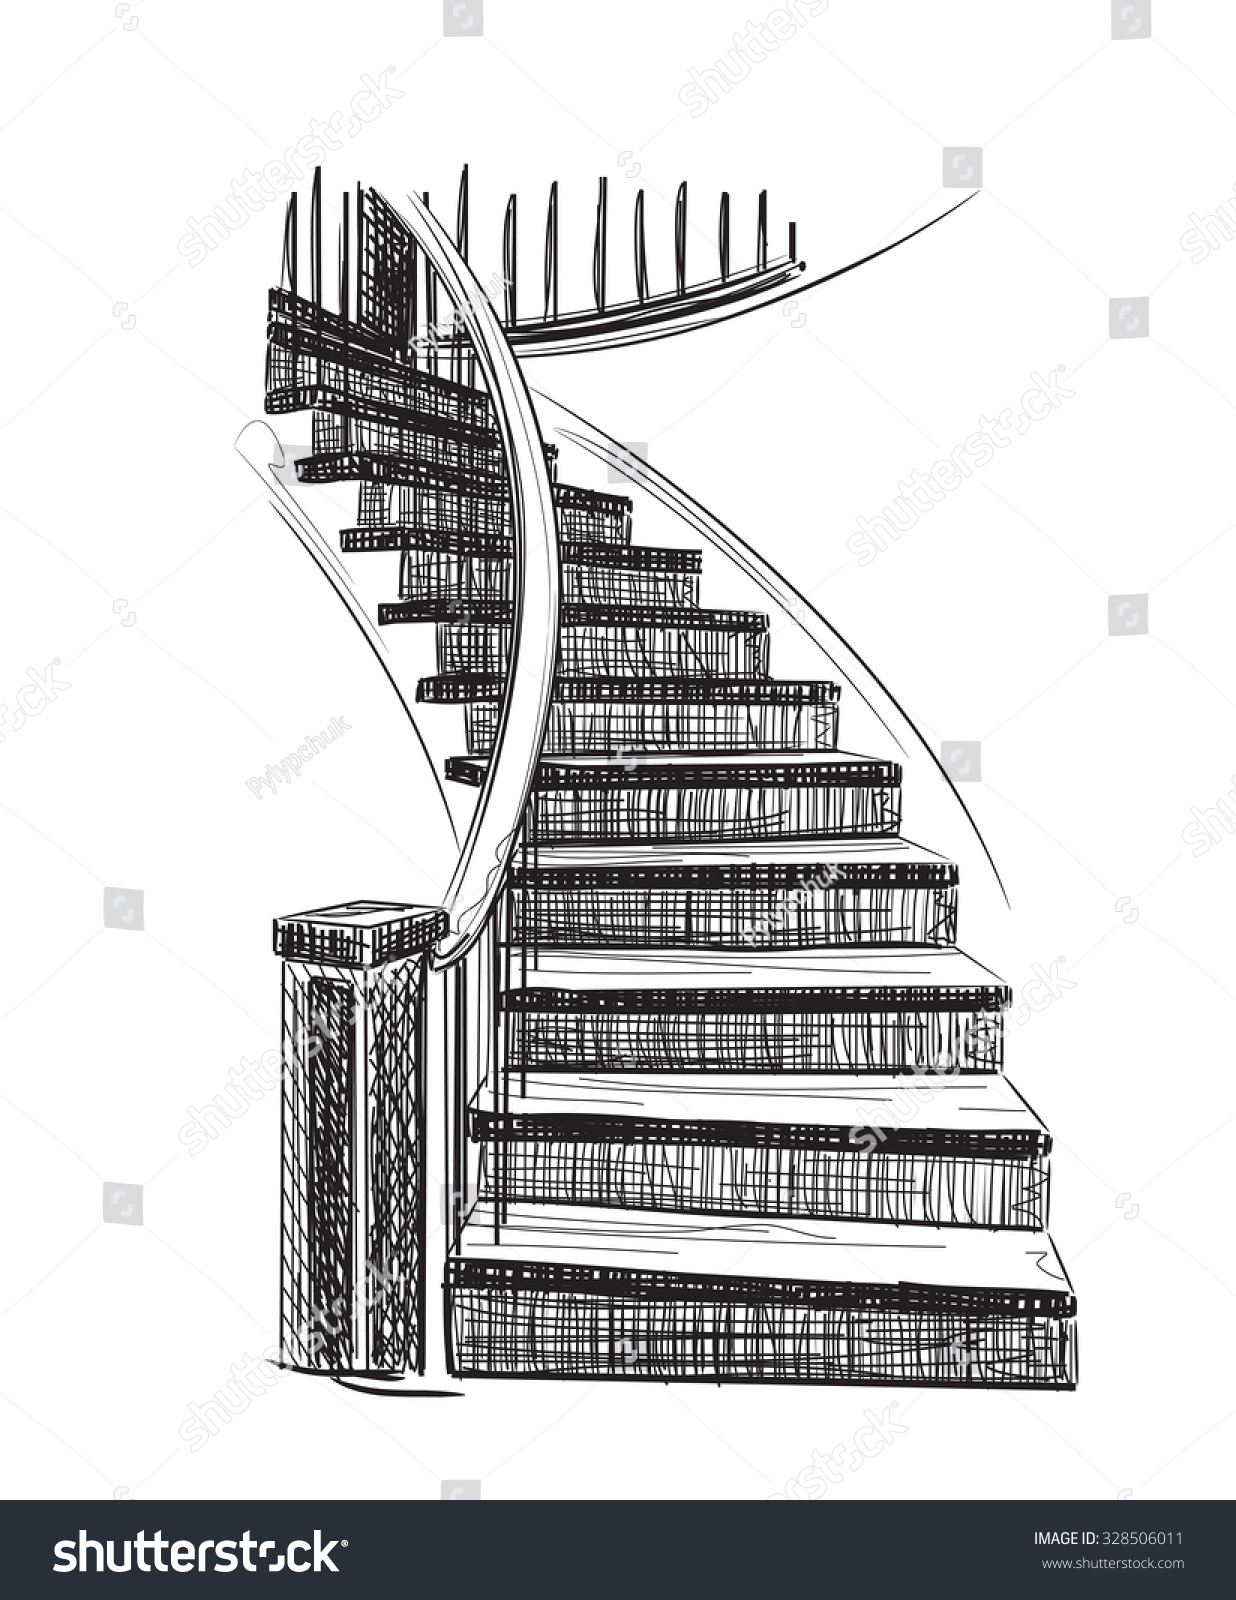 Stairs drawing related keywords amp suggestions stairs drawing - Hand Drawn Staircase Sketch Interior House Stock Vector 328506011